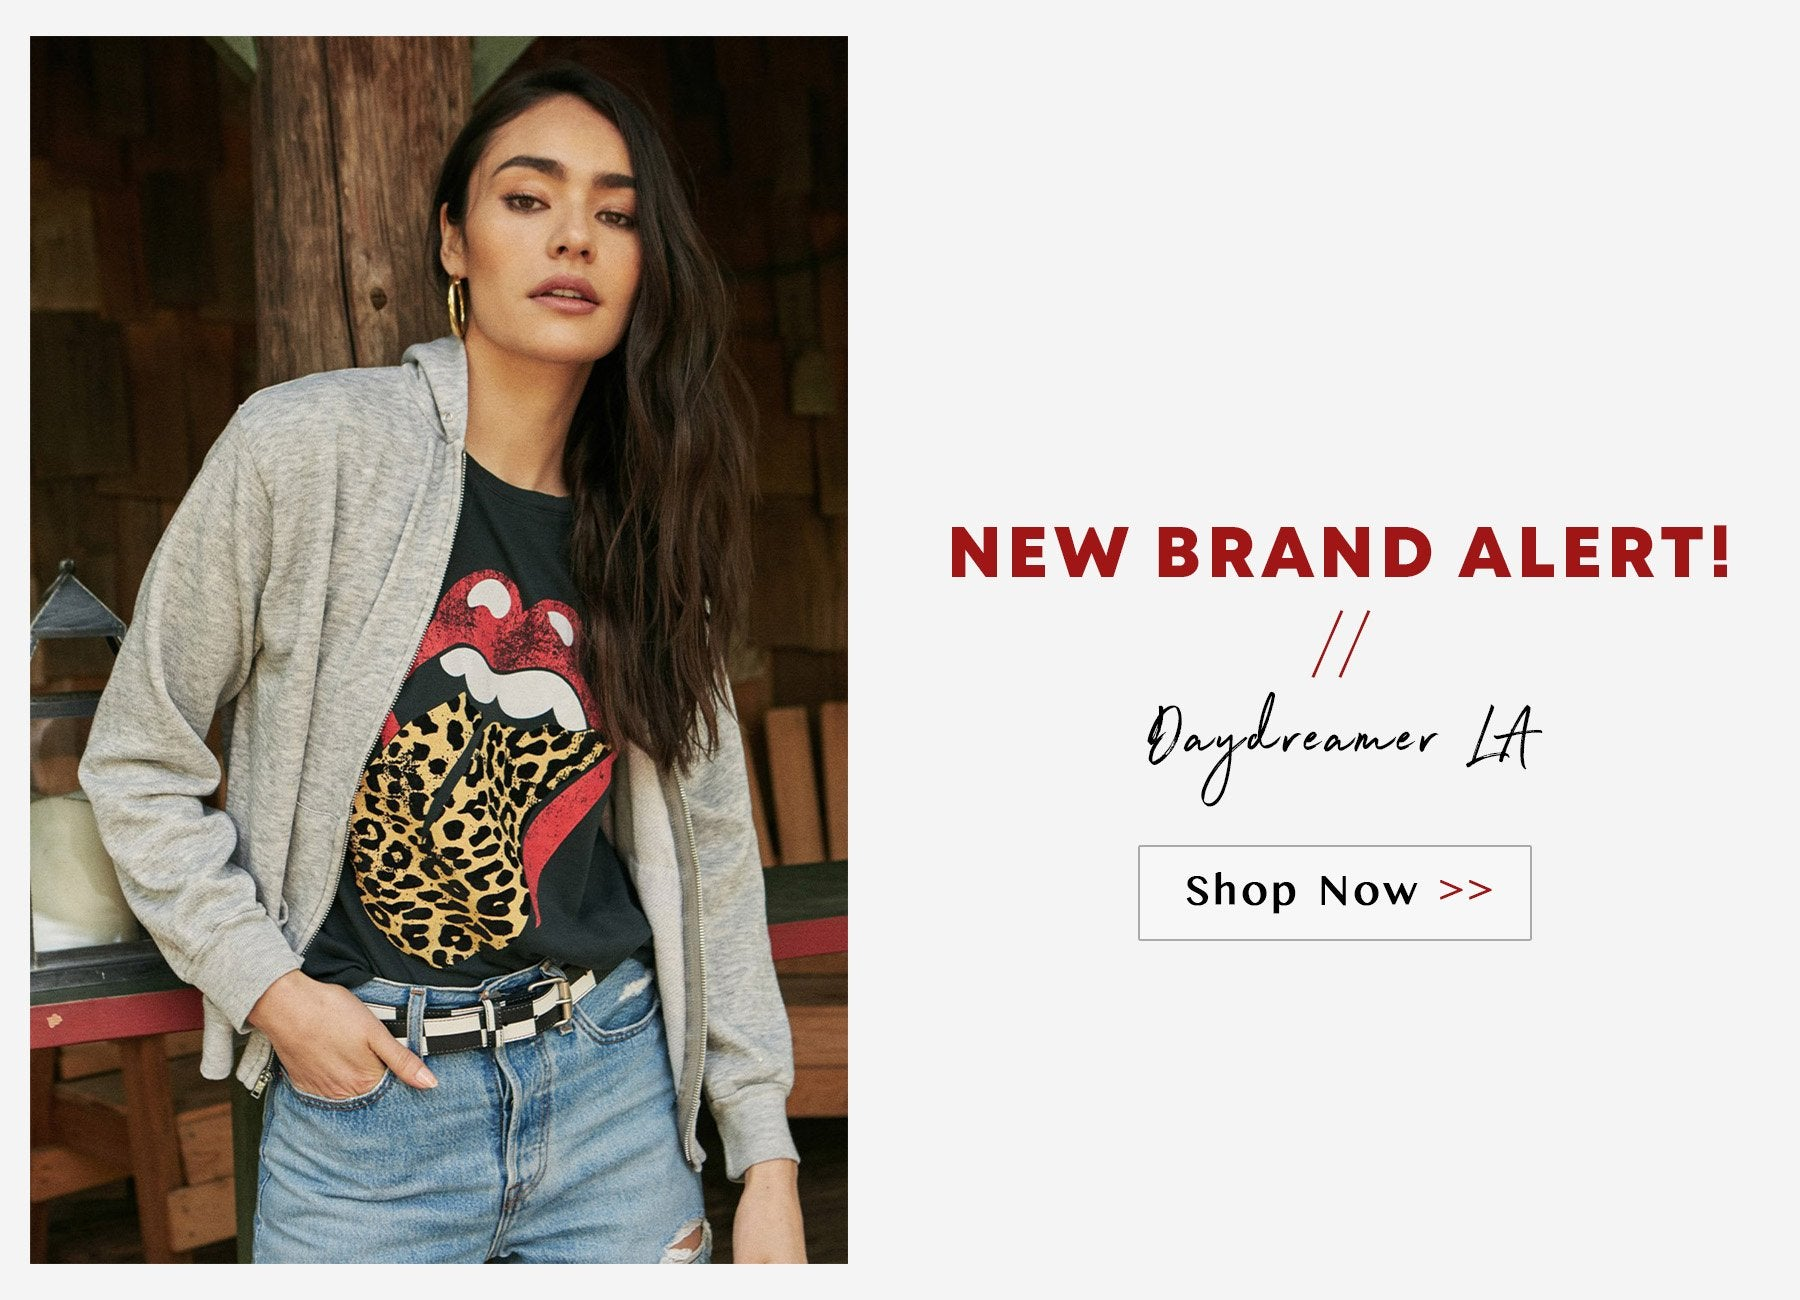 Boho Bum Island Daydreamer Clothing Rolling Stones Cheetah The Police Rock Bank Vintage Tees Metallica ACDC